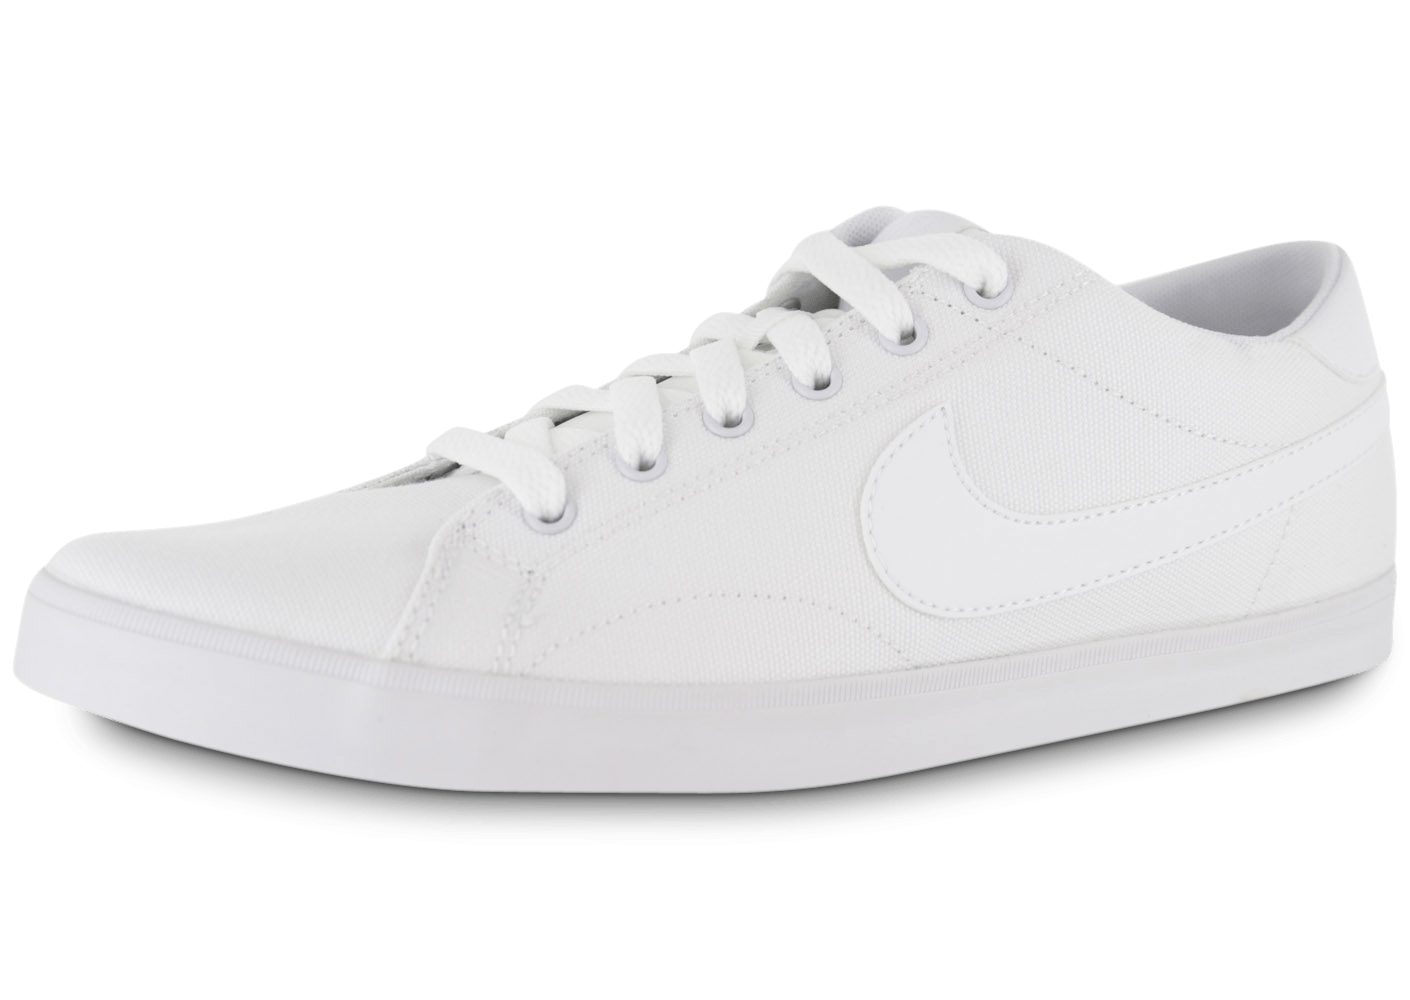 new concept dd211 dc7fc Nike Eastham Toile Blanche - Chaussures Baskets homme - Chausport